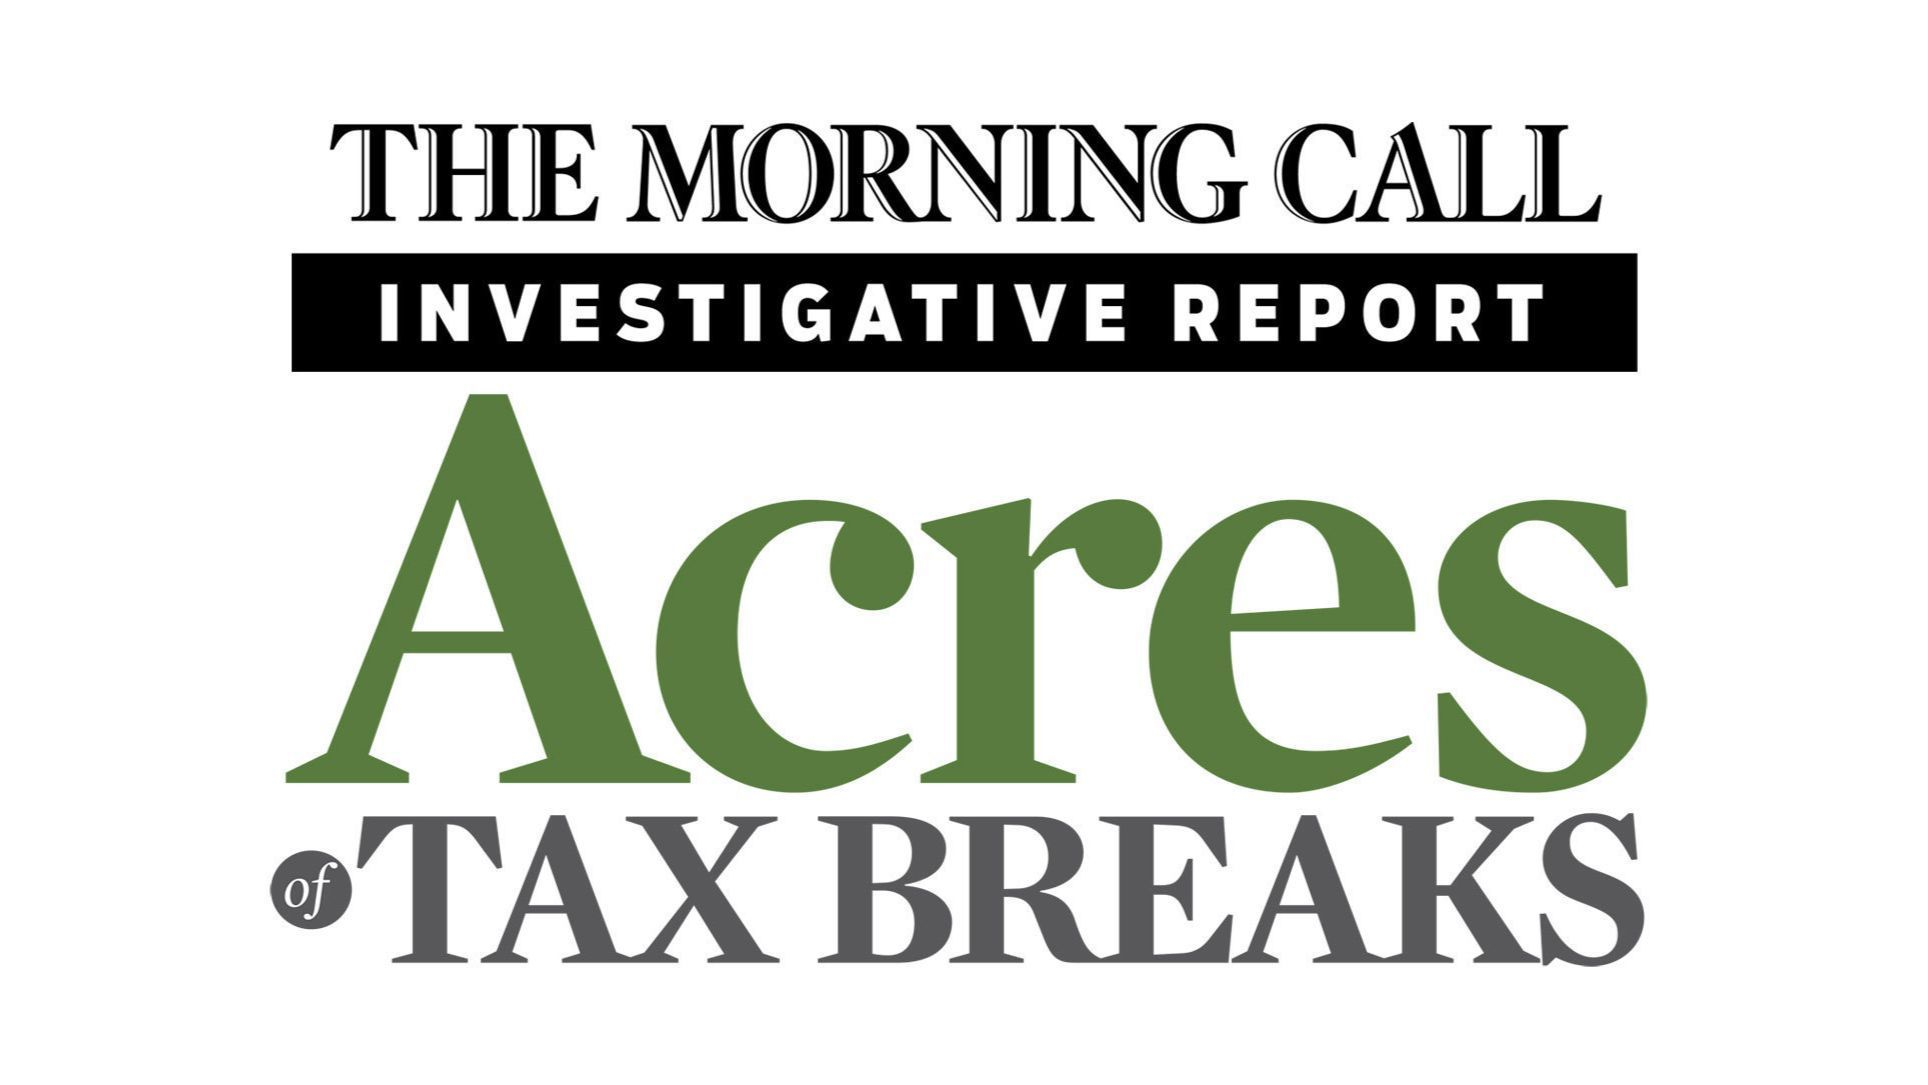 Acres of Tax Breaks